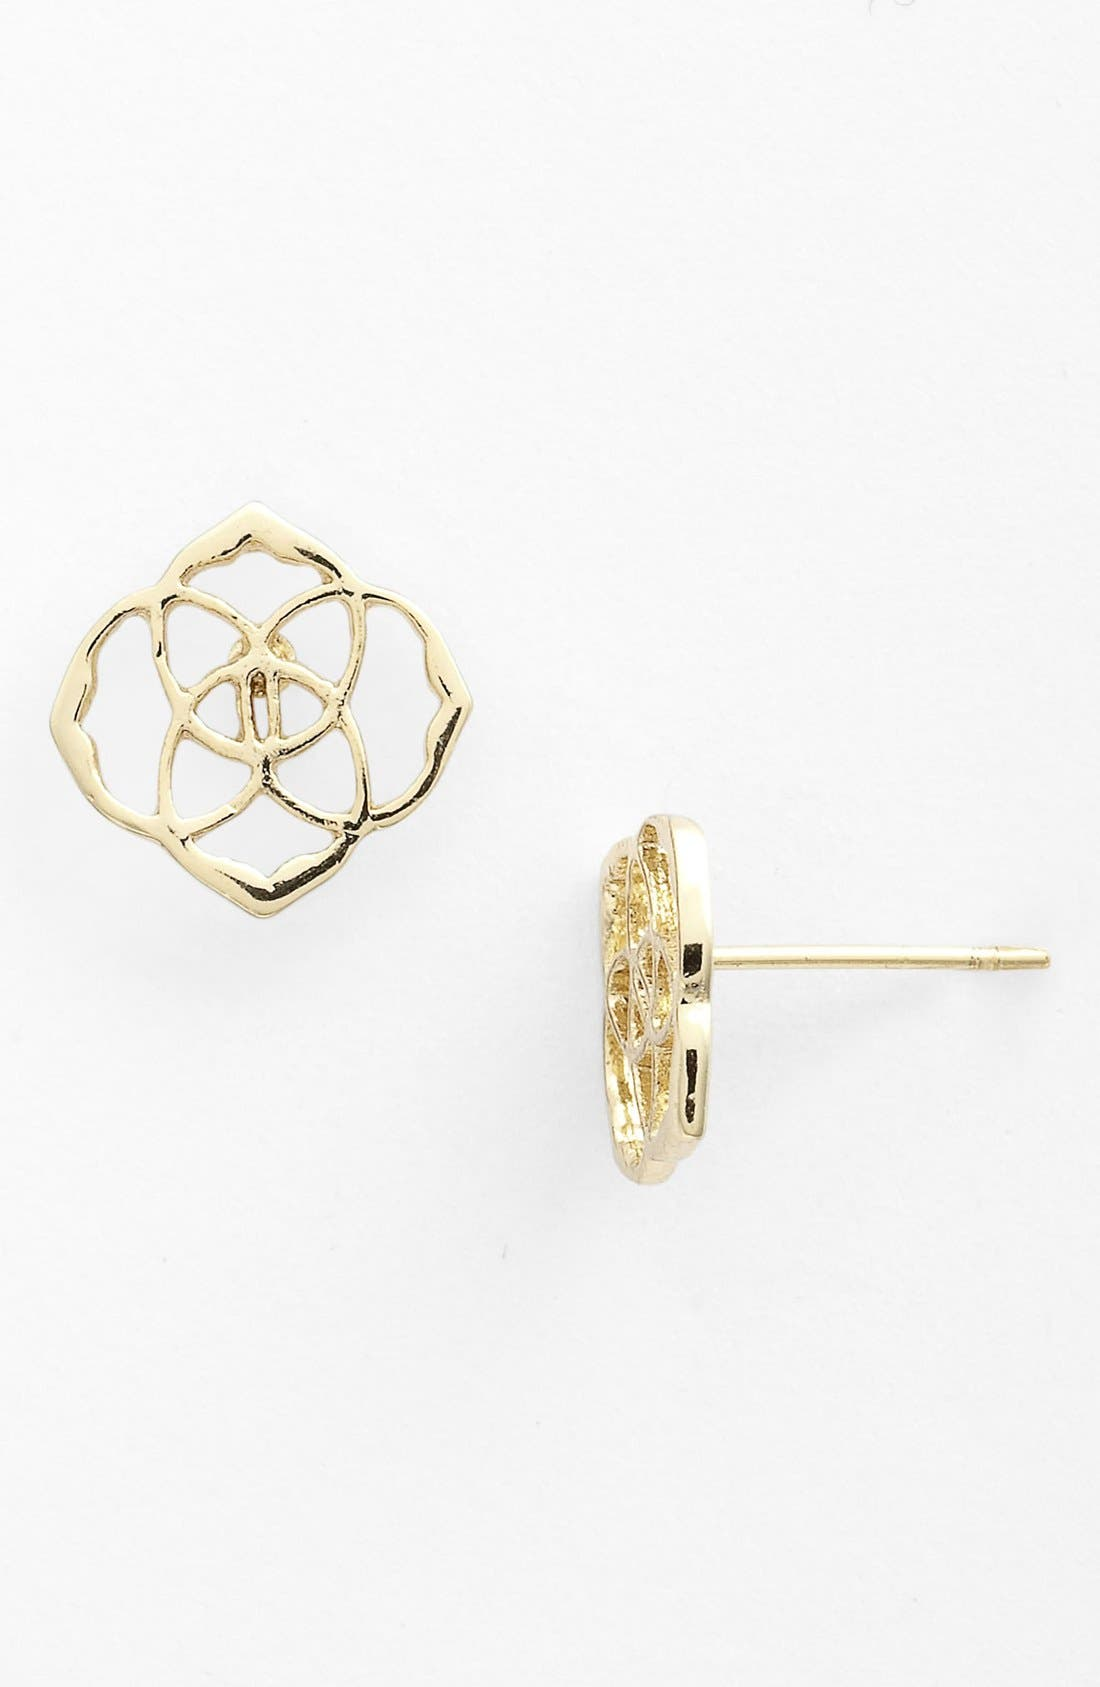 Kendra Scott 'Dira' Stud Earrings